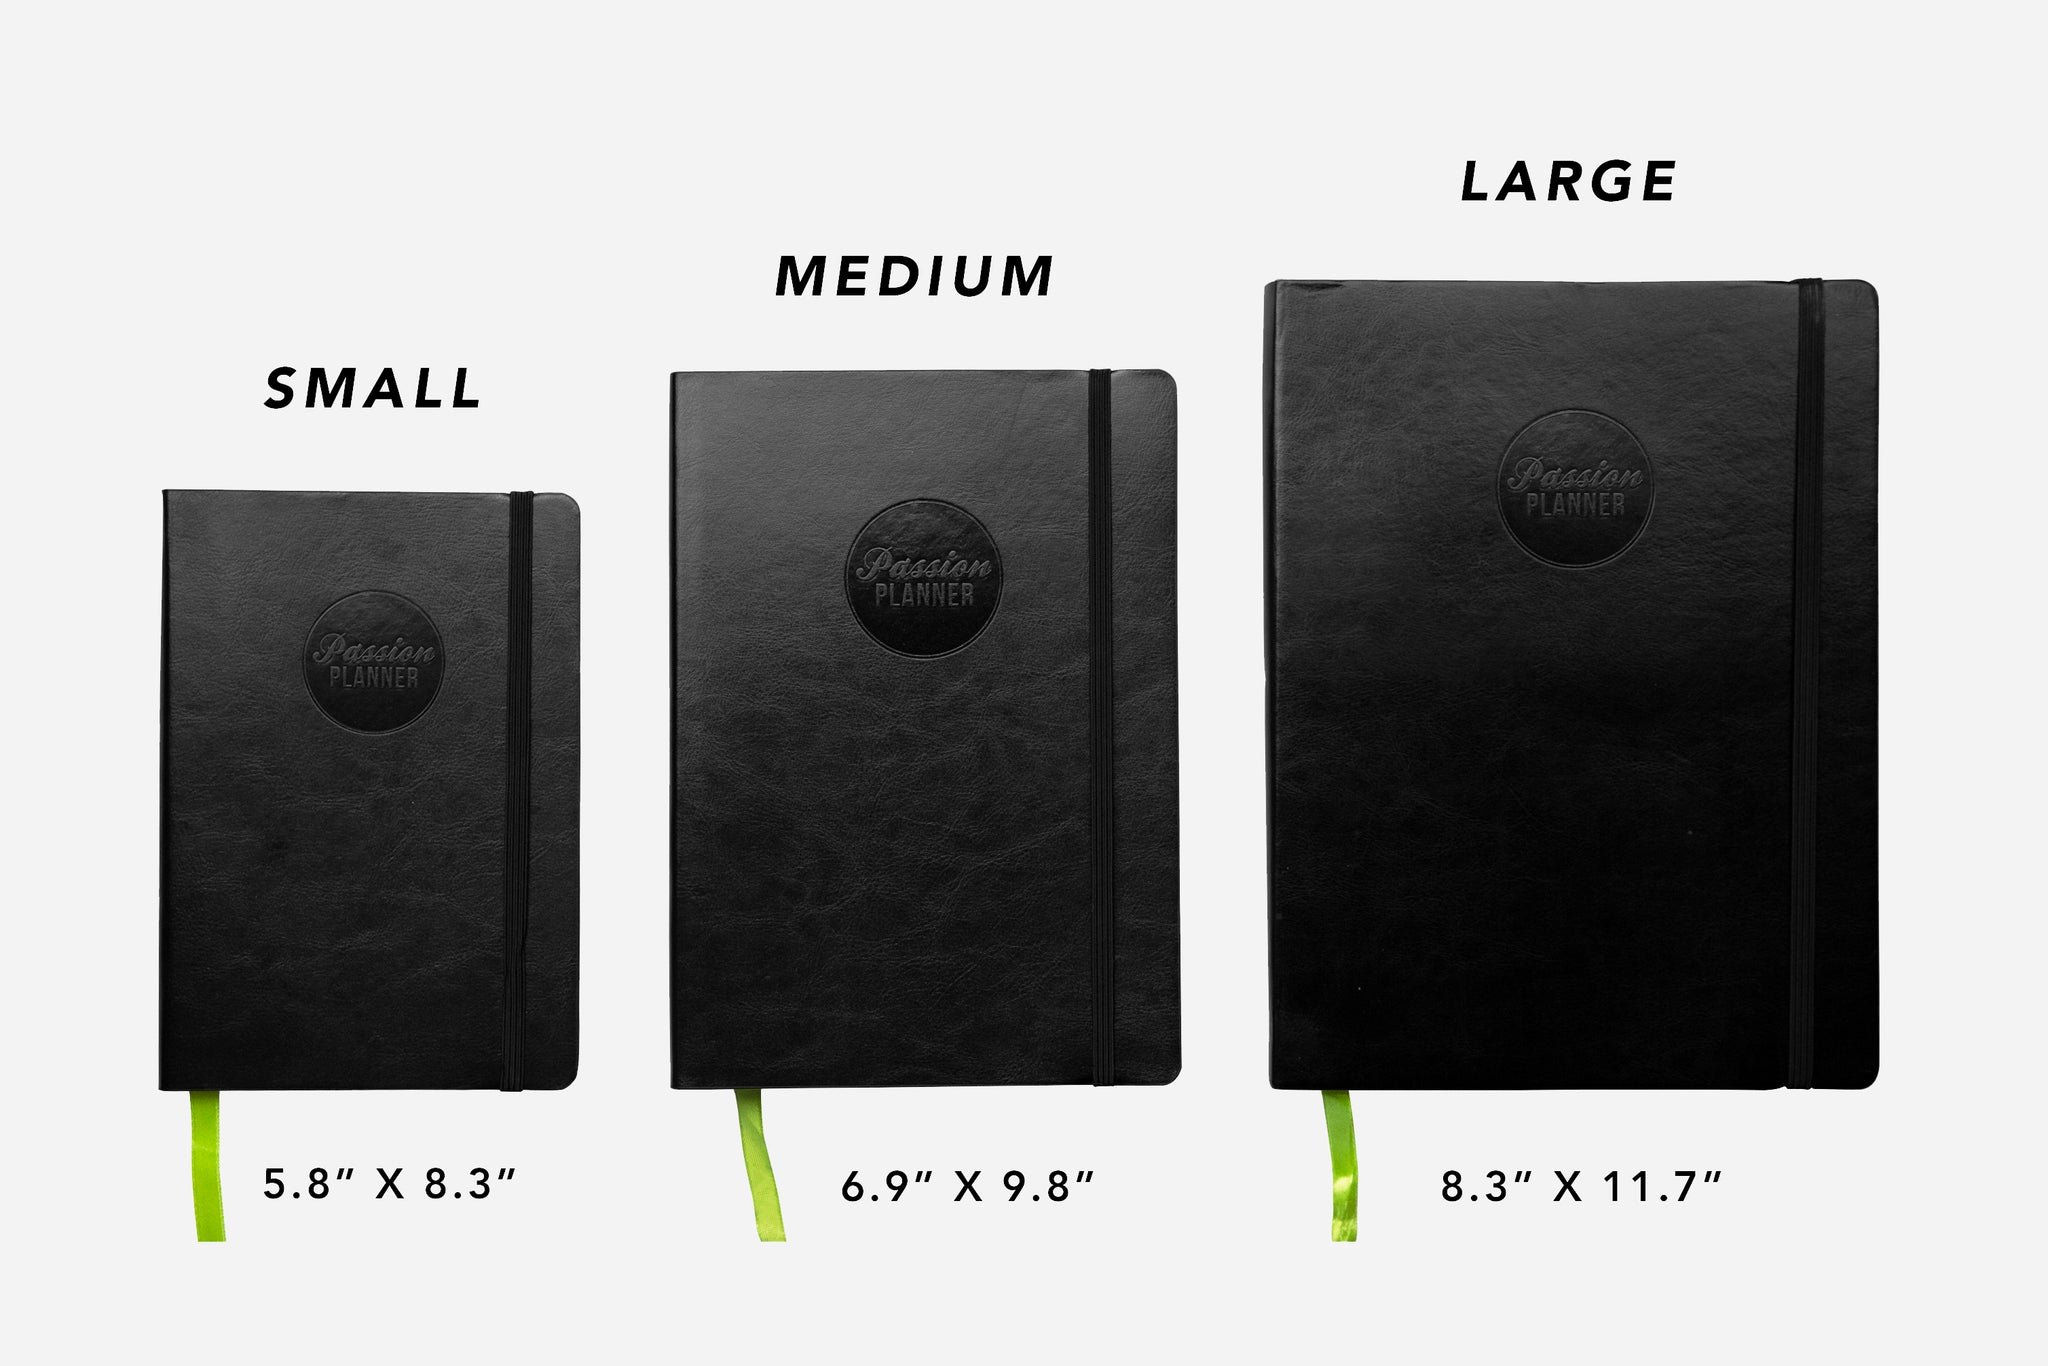 Passion Planner Size Differences